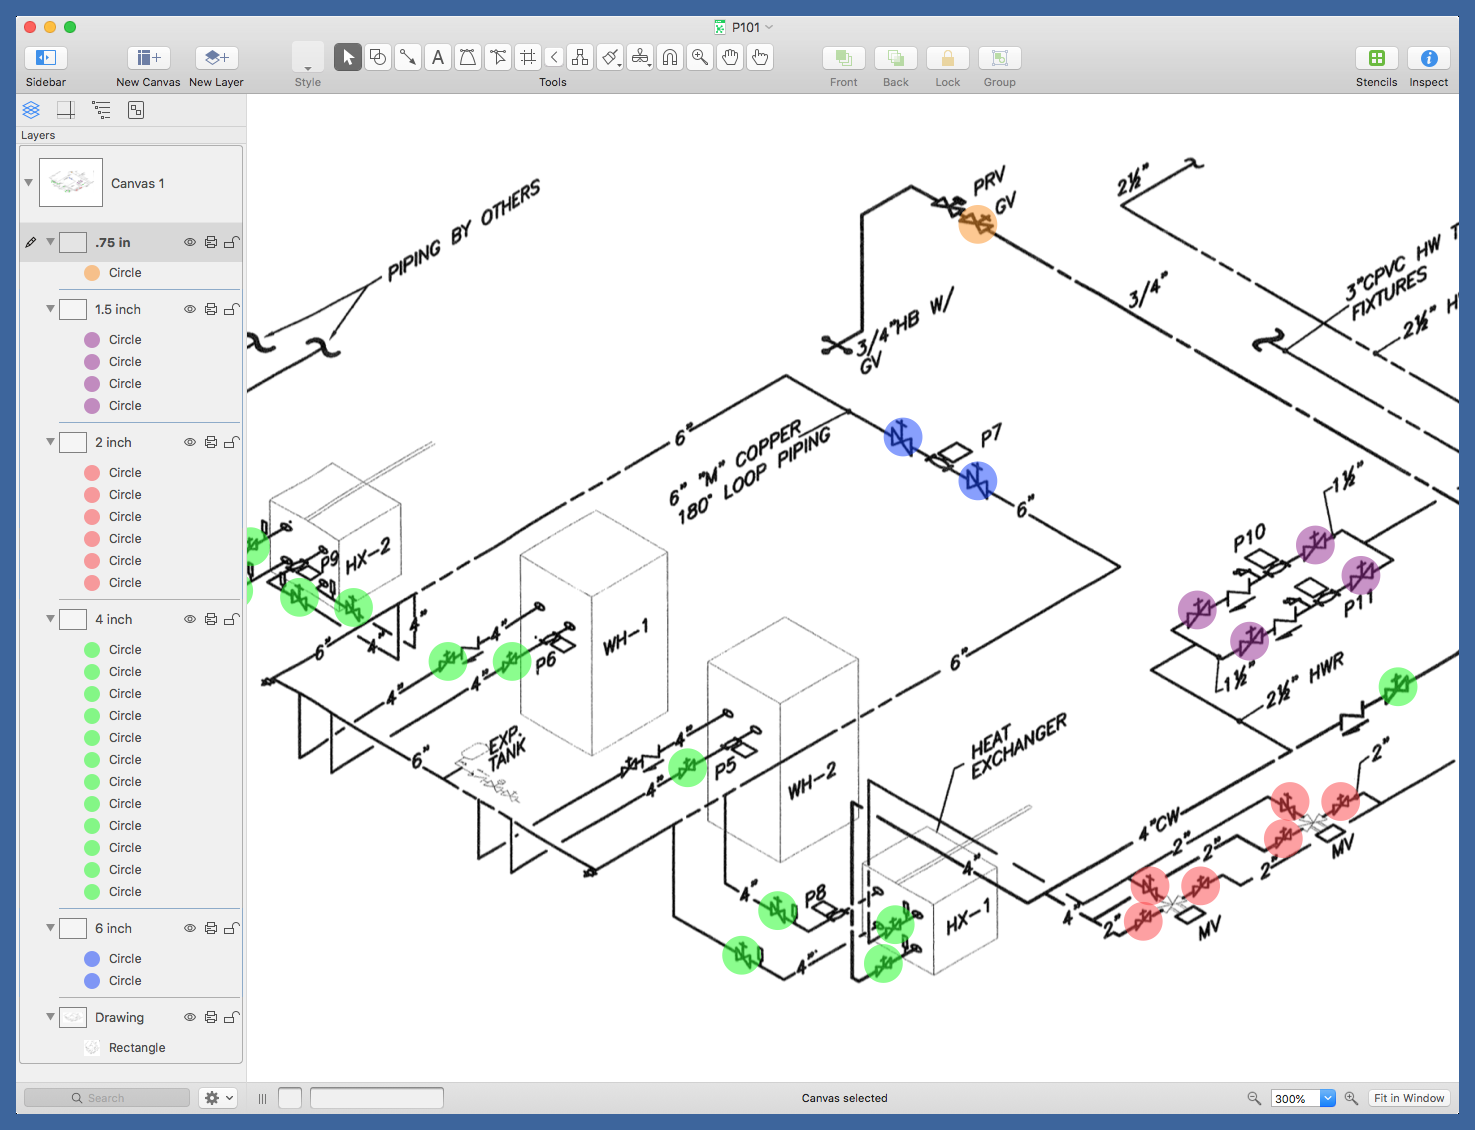 Annotated plumbing drawing